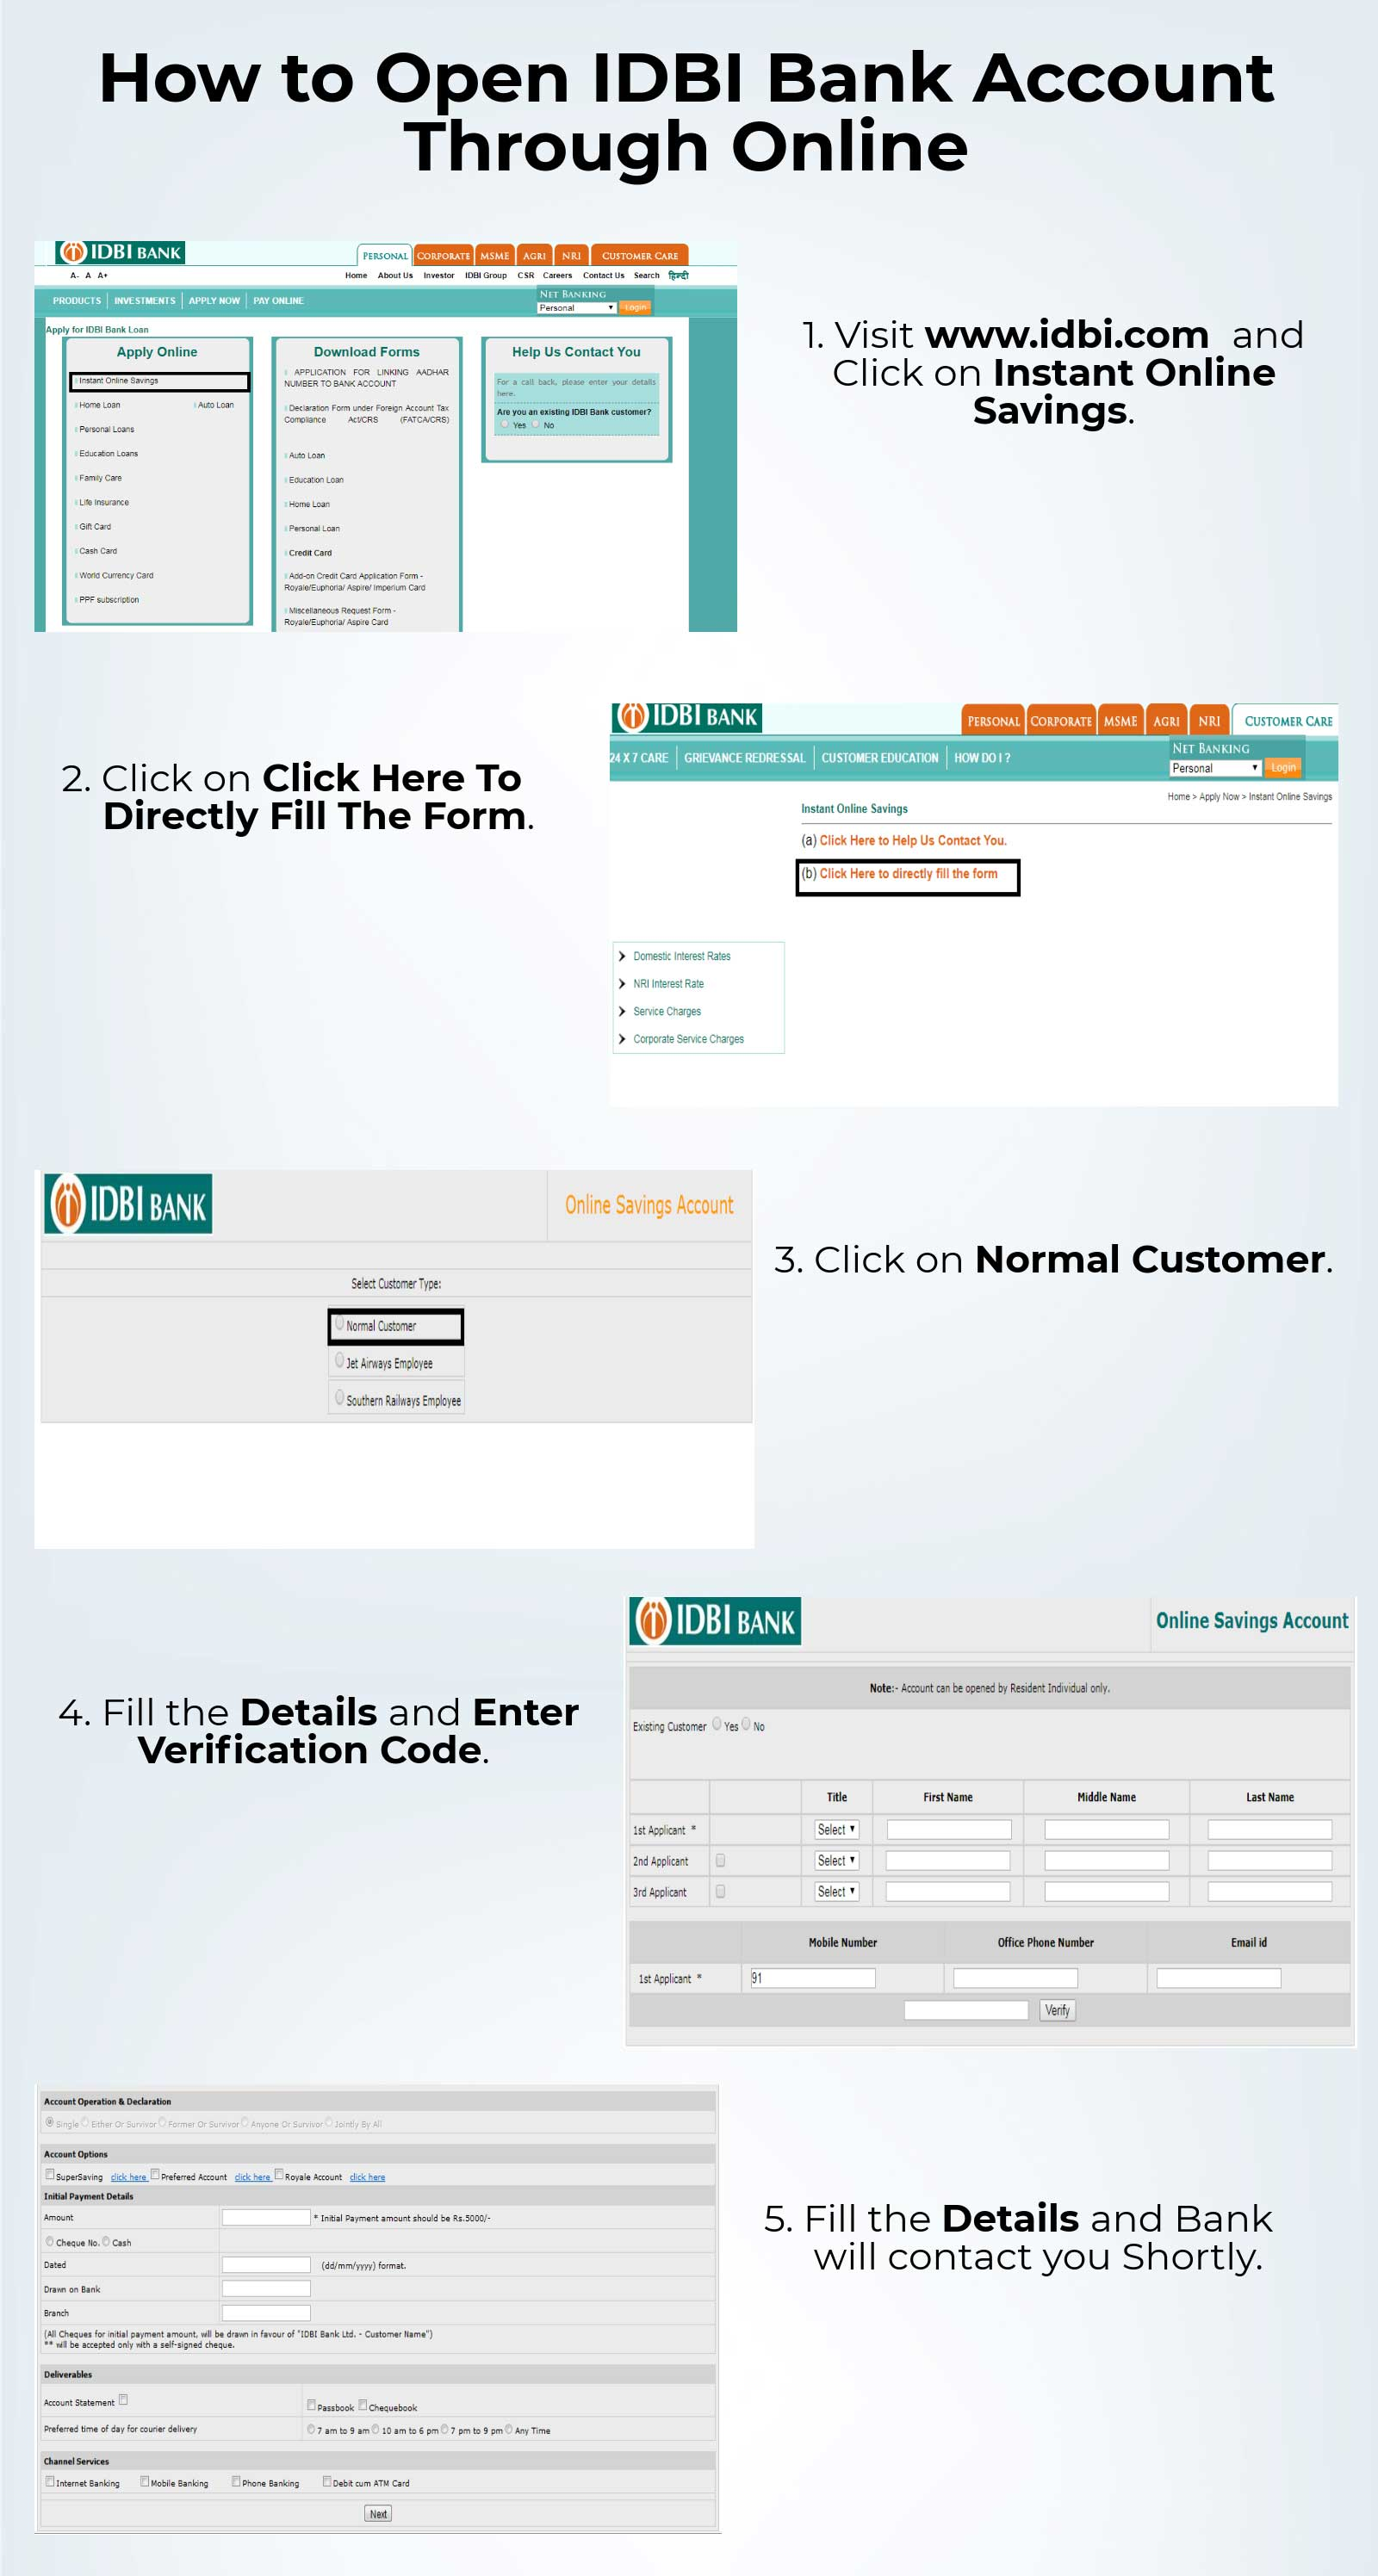 1.   Visit www.idbi.com and Click on Instant Online Savings. 2.  Click on Click Here To Directly Fill The Form. 3.  Click on Normal Customer. 4.  Fill the Details and Enter Verification Code. 5.  Fill the Details and Bank will contact you shortly.